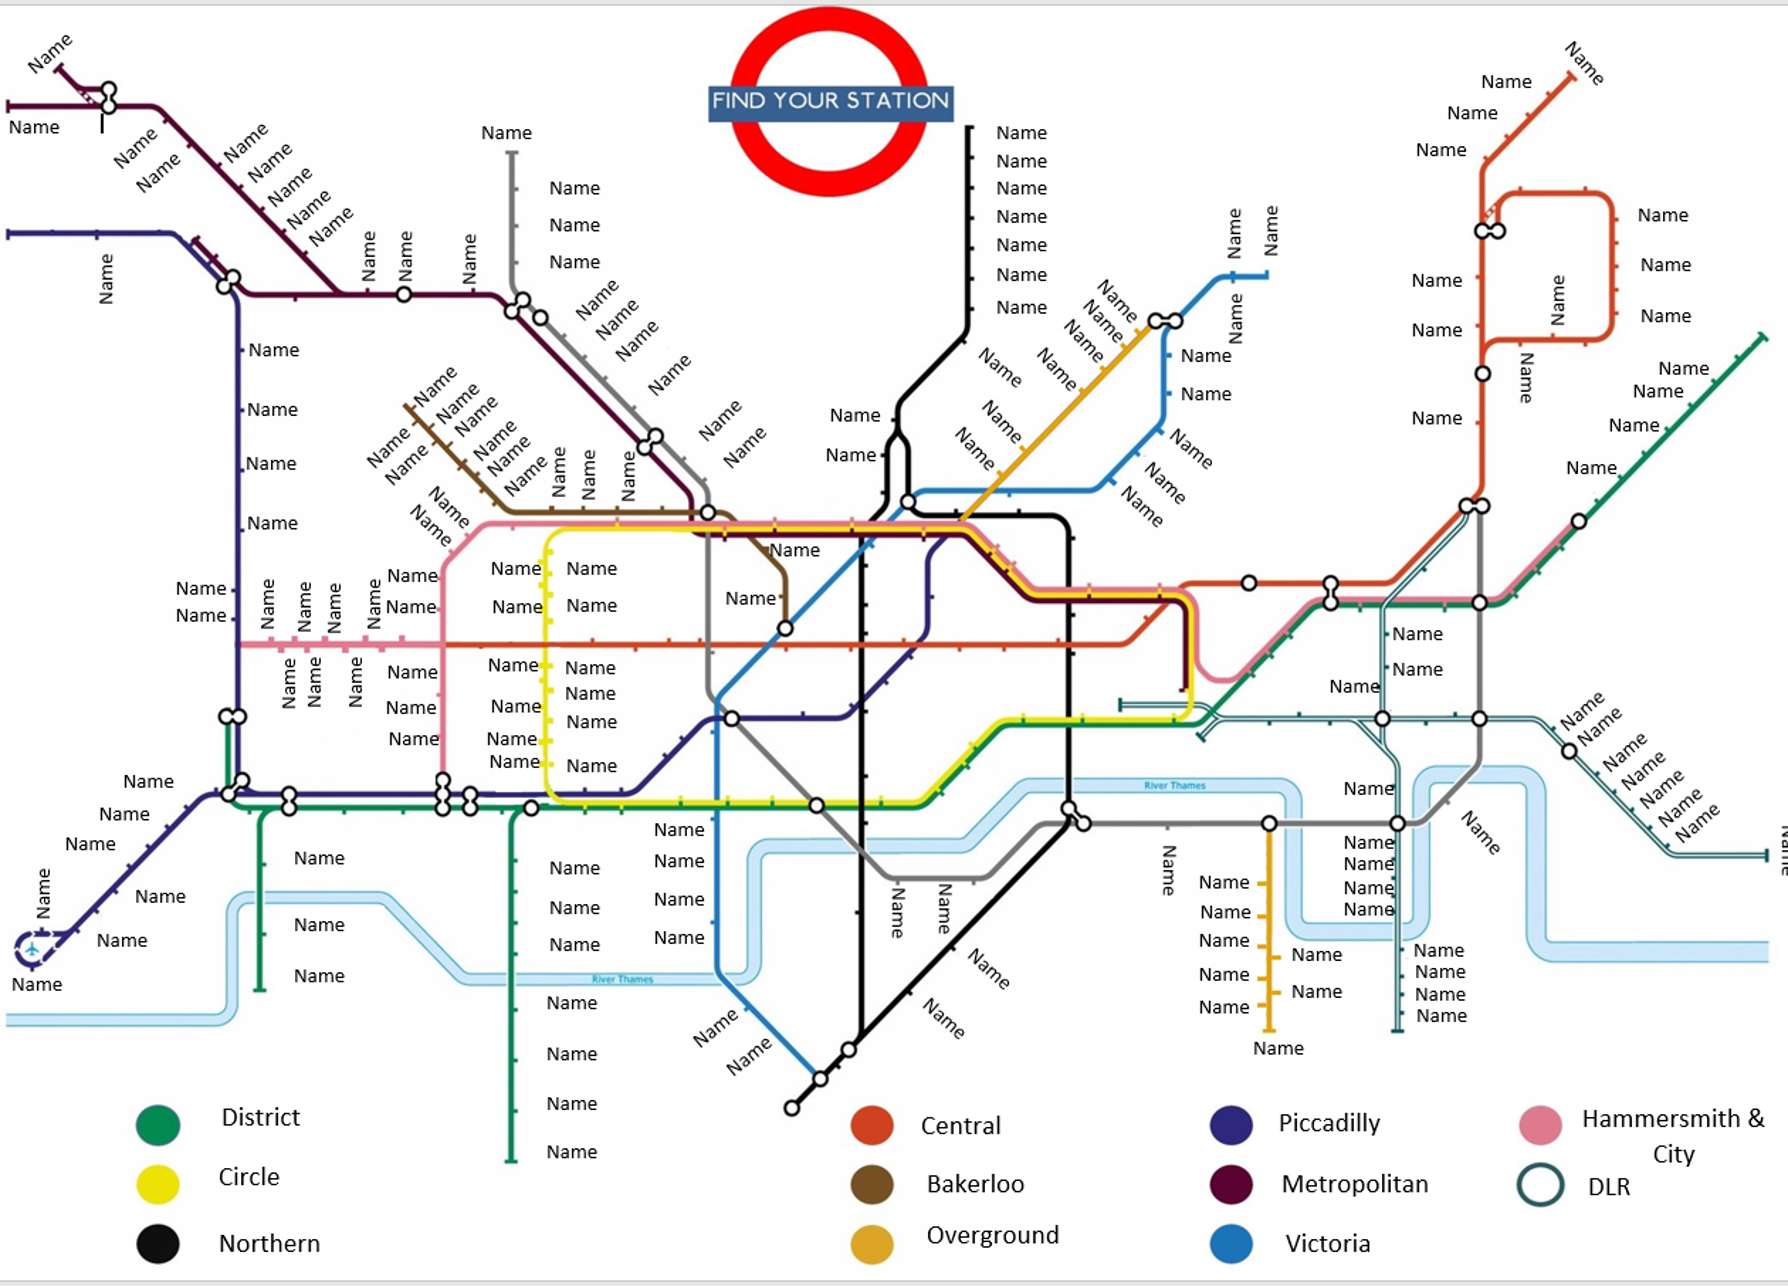 London Tube Map Table Seating Plan With Stations For Weddings